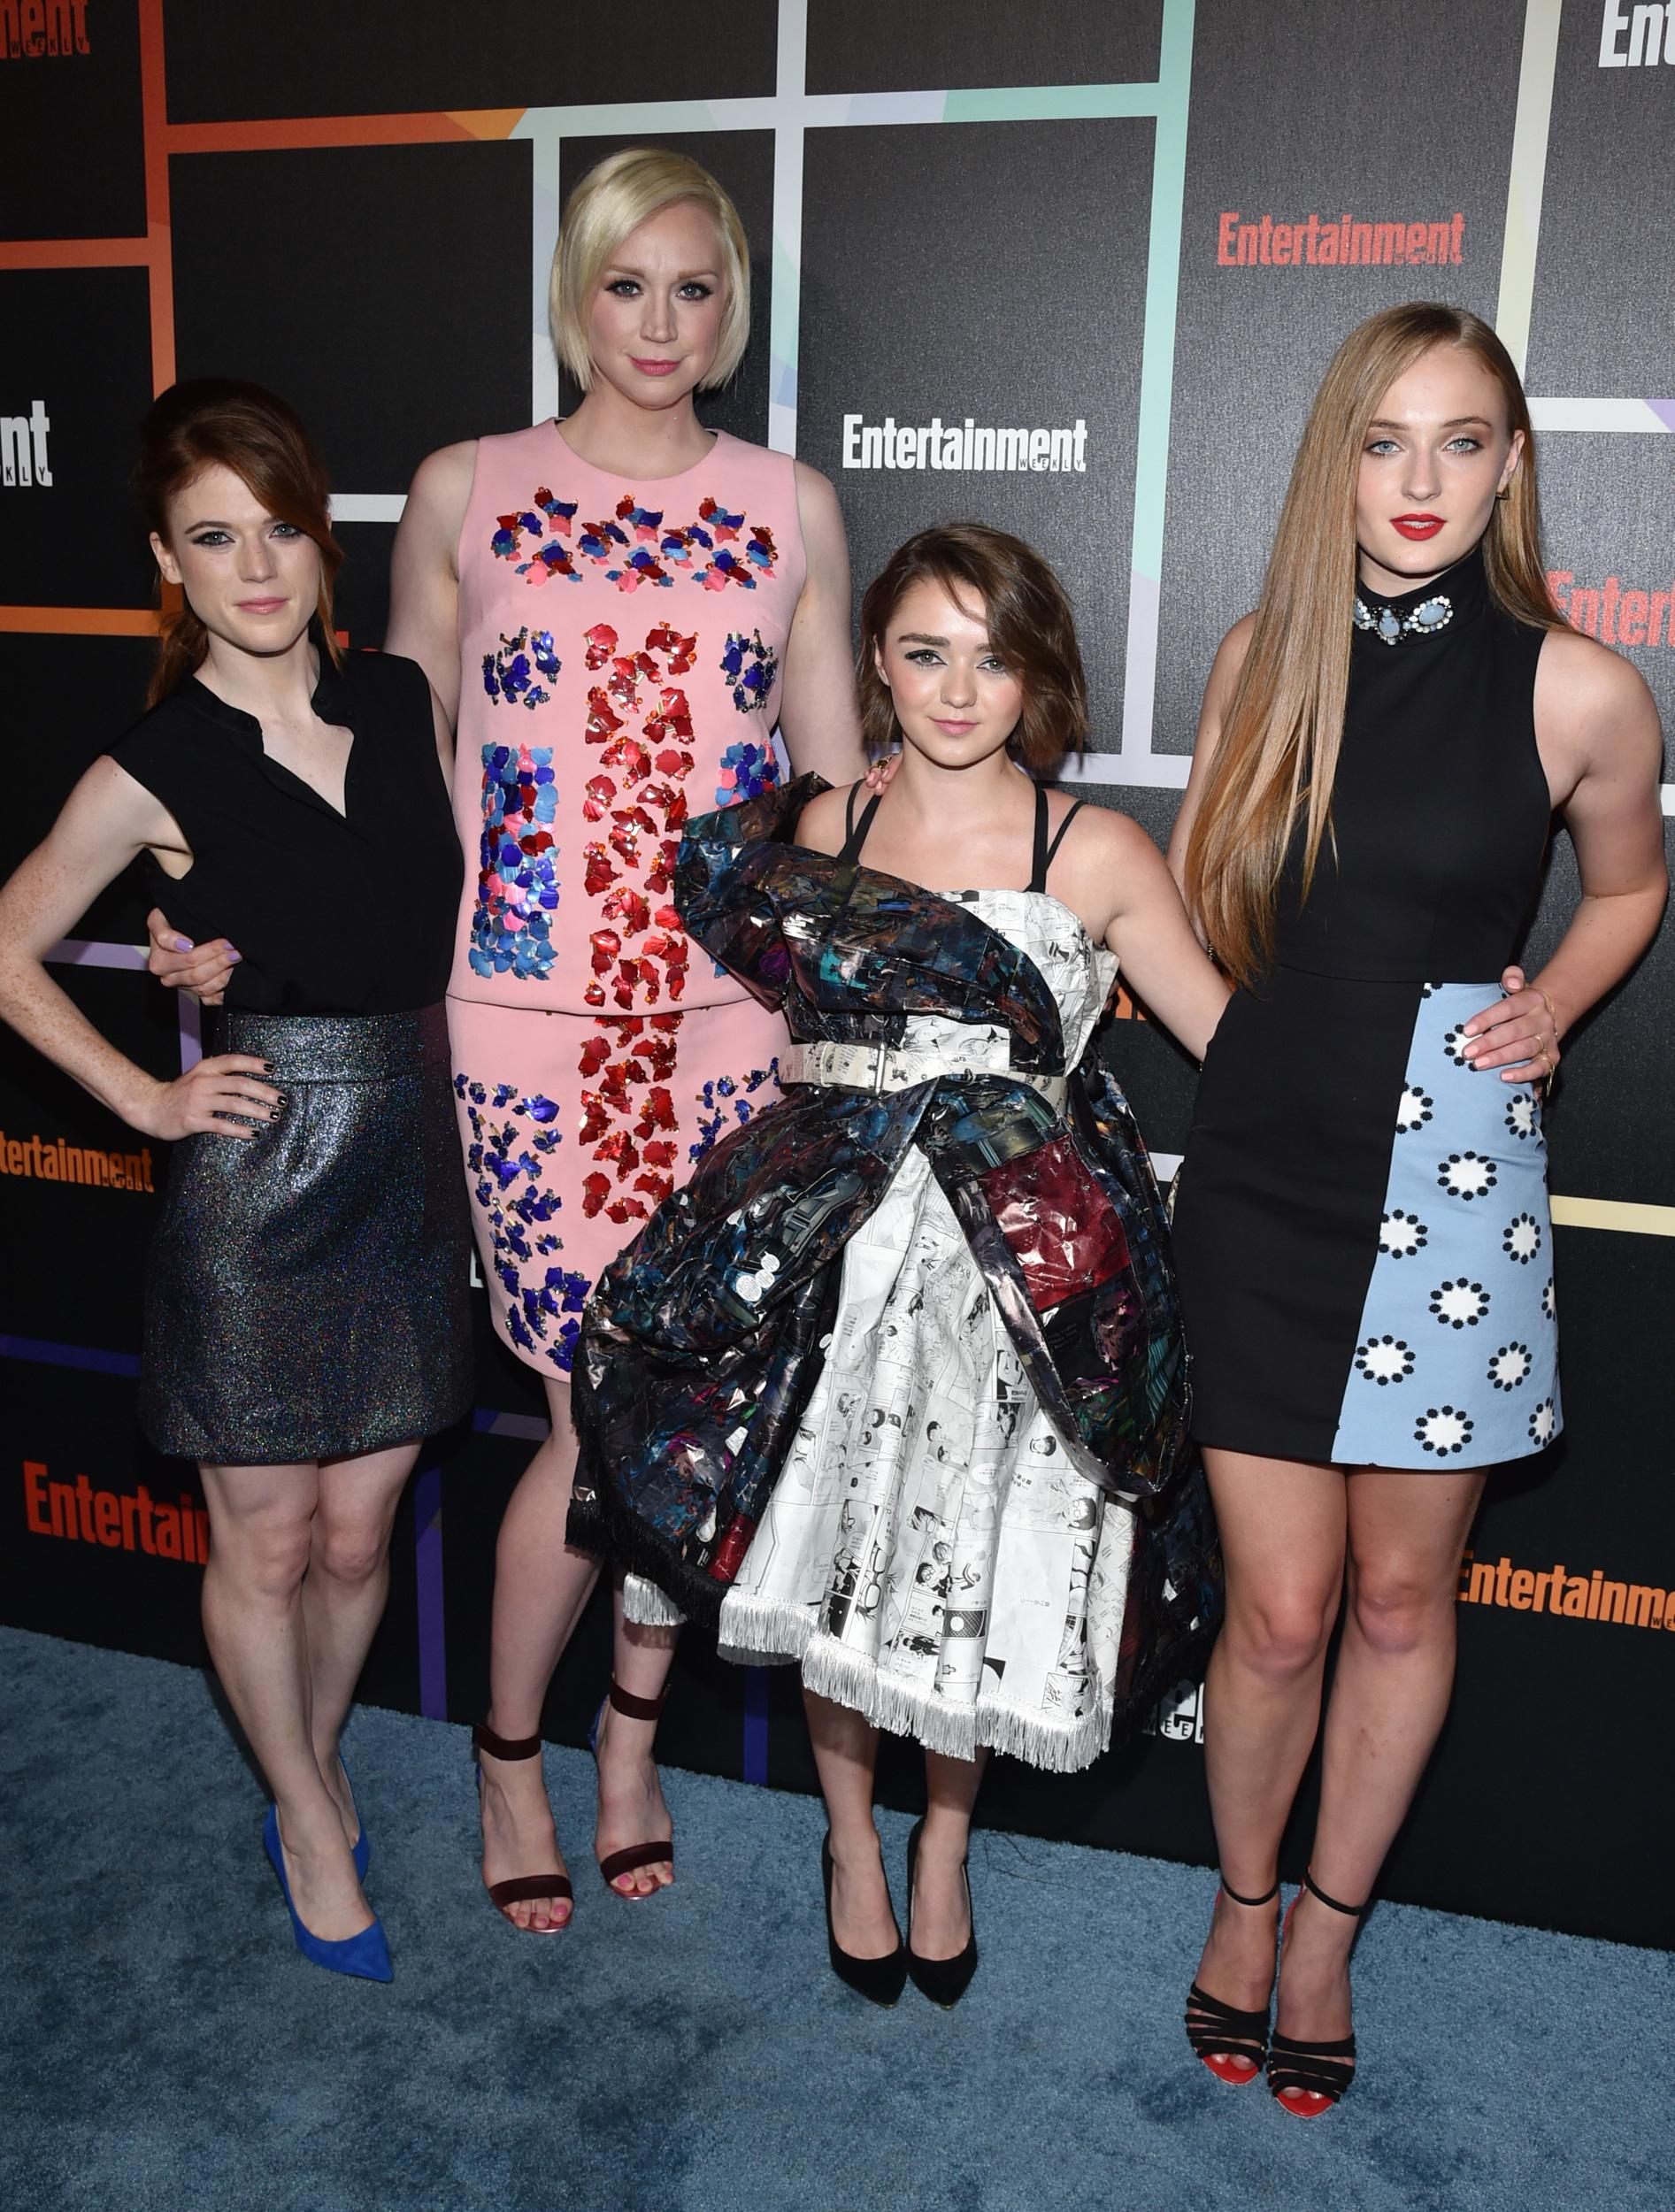 Rose Leslie, and from left, Gwendoline Christie, Maisie Williams and Sophie Turner arrive at Entertainment Weekly's Annual Comic-Con Closing Night Celebration at the Hard Rock Hotel on Saturday, July 26, 2014, in San Diego. (Photo by John Shearer/Invision for Entertainment Weekly/AP Images)